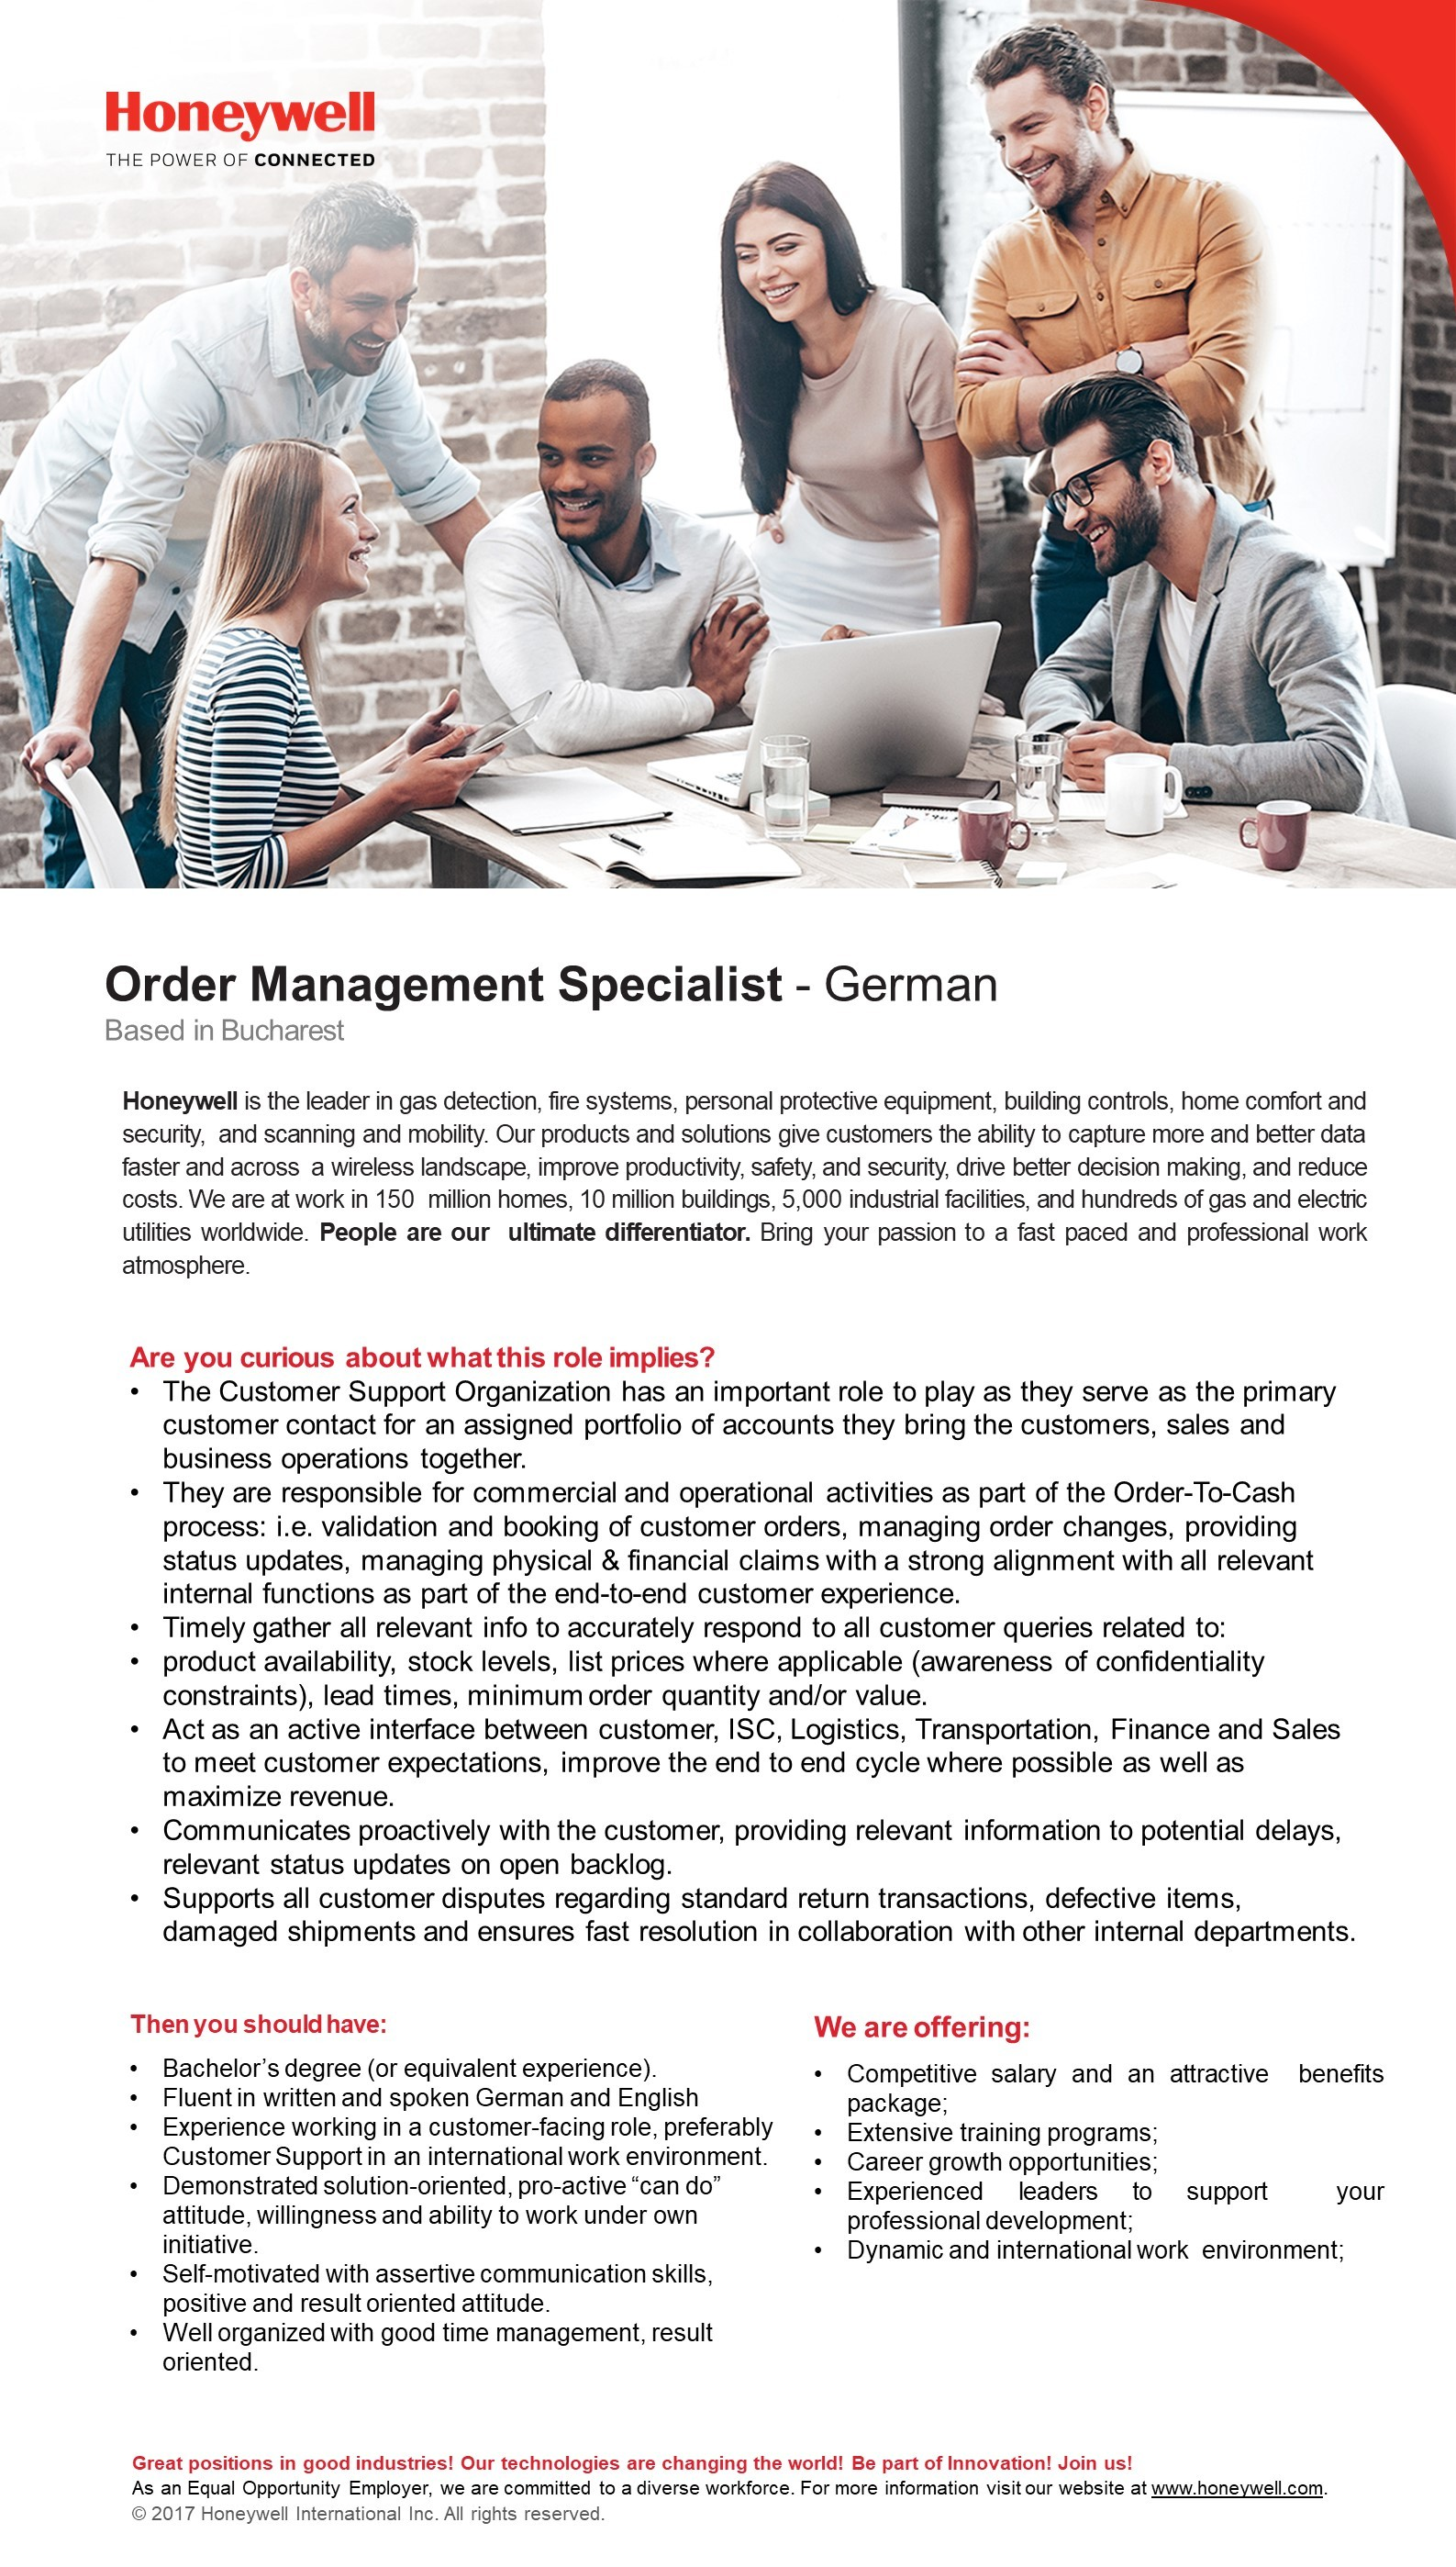 Order Management Specialist with German